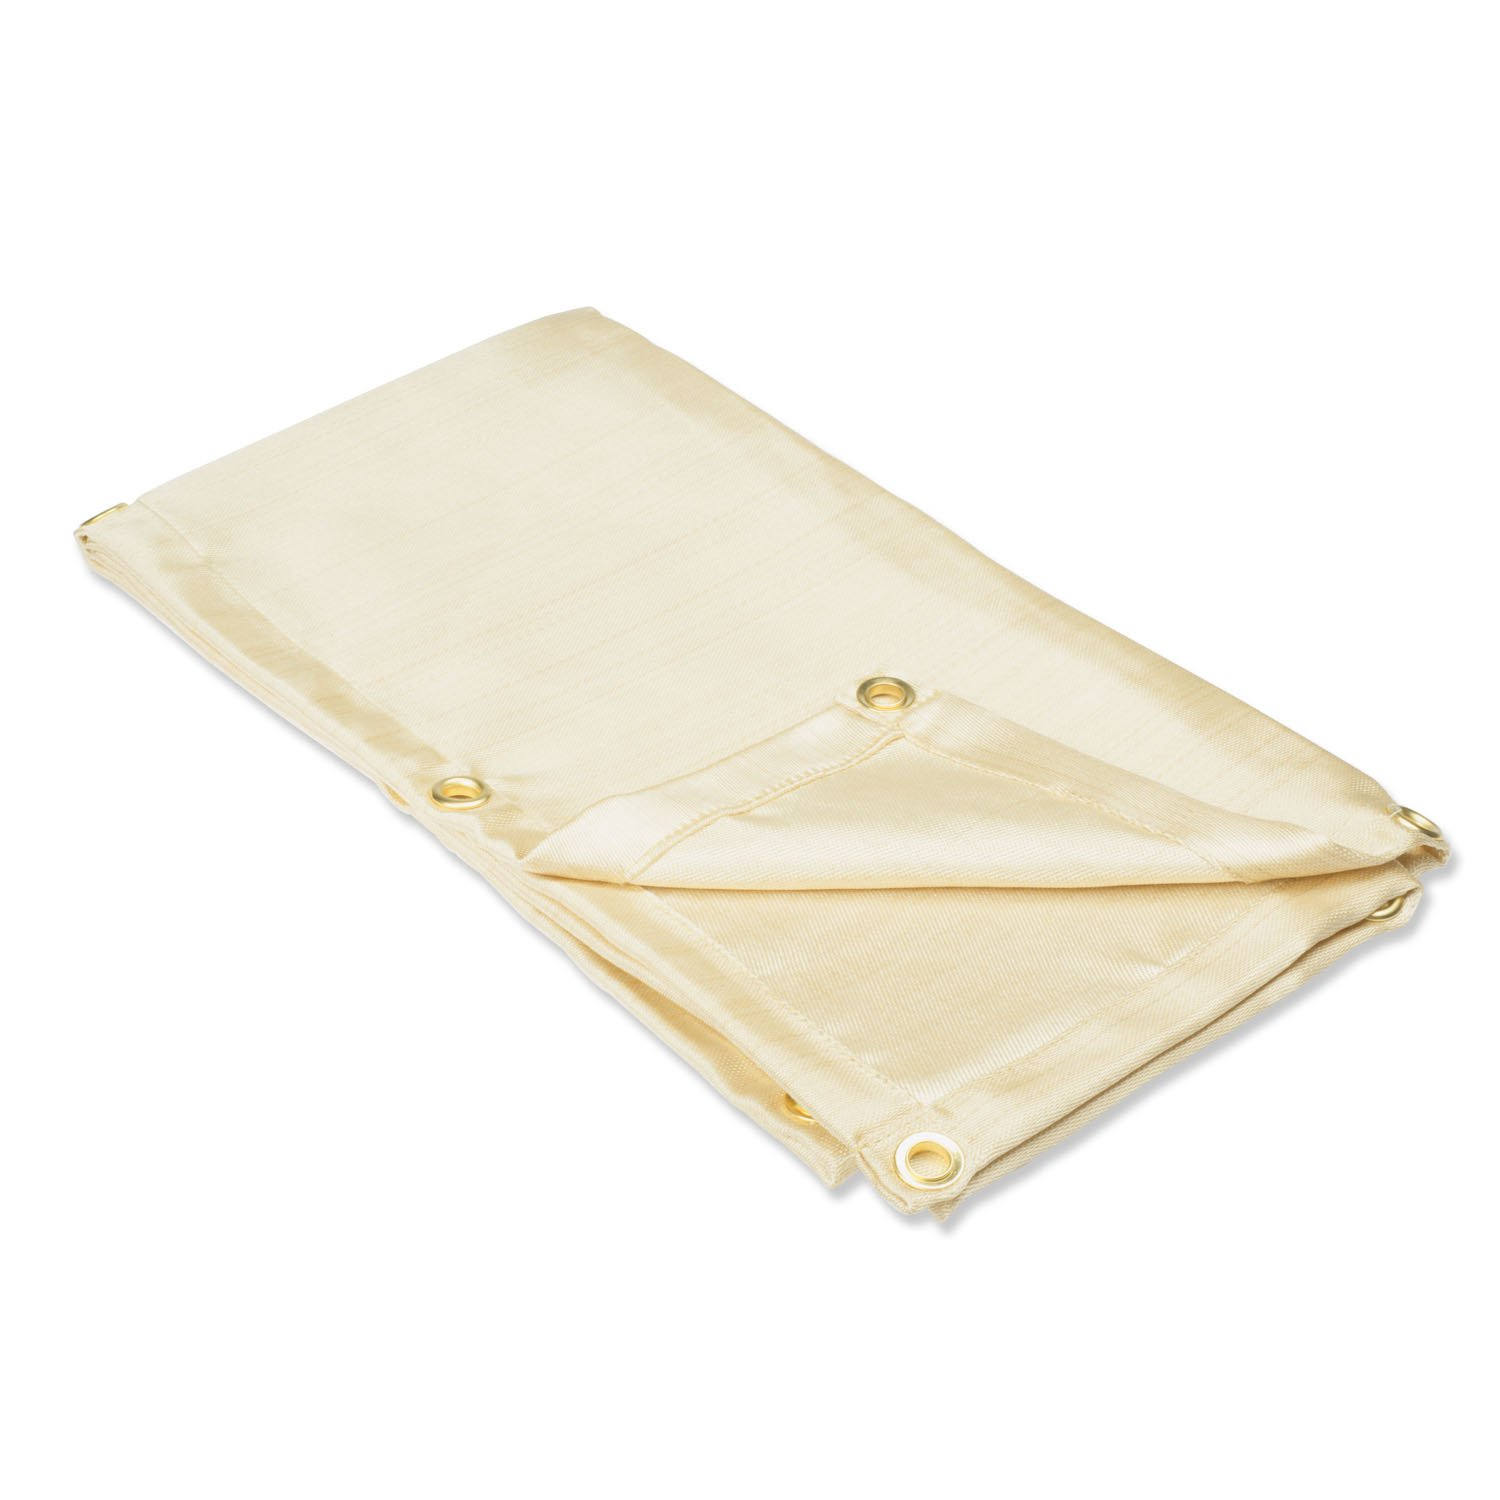 Neiko 10909A Heavy Duty Fiberglass Welding Blanket and Cover with Brass Grommets | Size 6 FT. x 8 FT. Ridgerock Tools Inc.